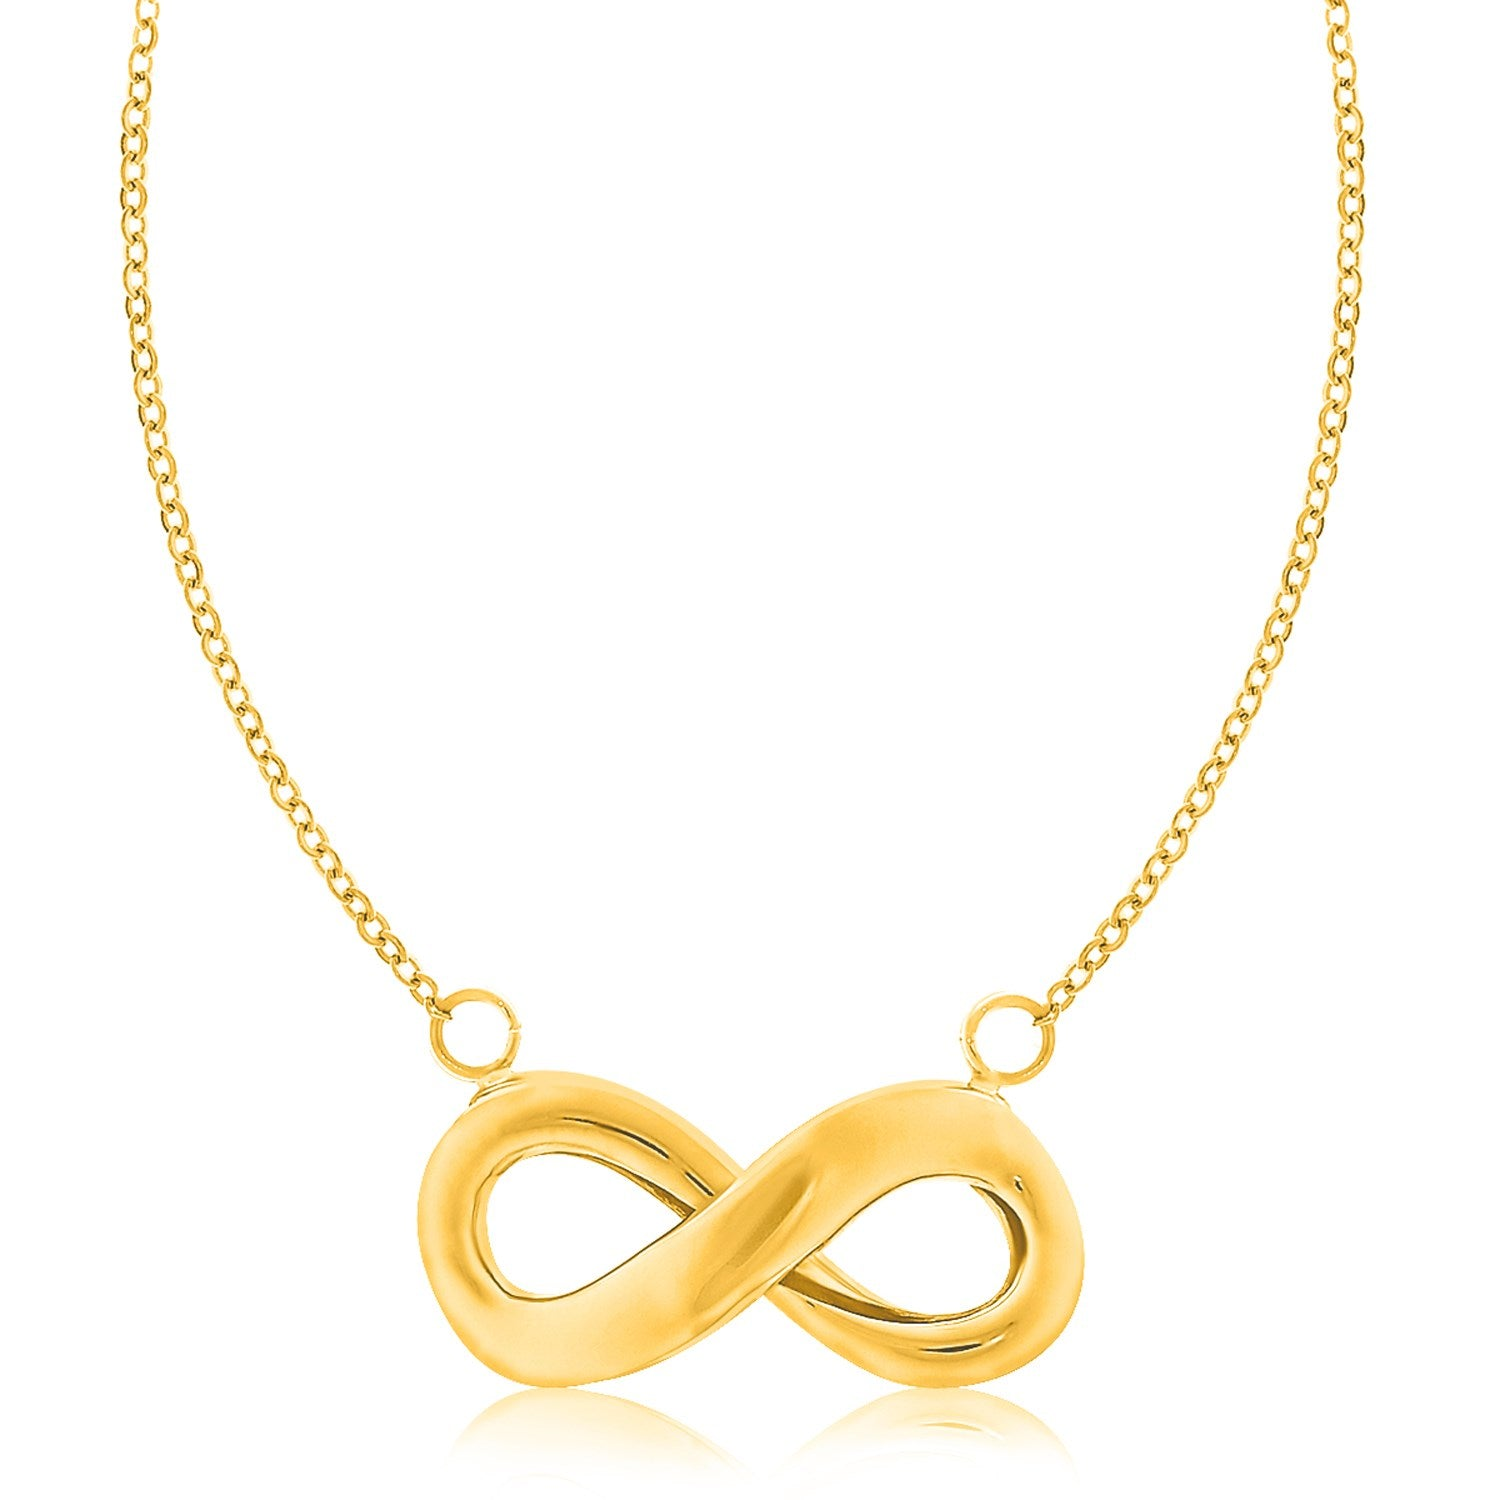 14K Yellow Gold Necklace with an Infinity Motif Accent